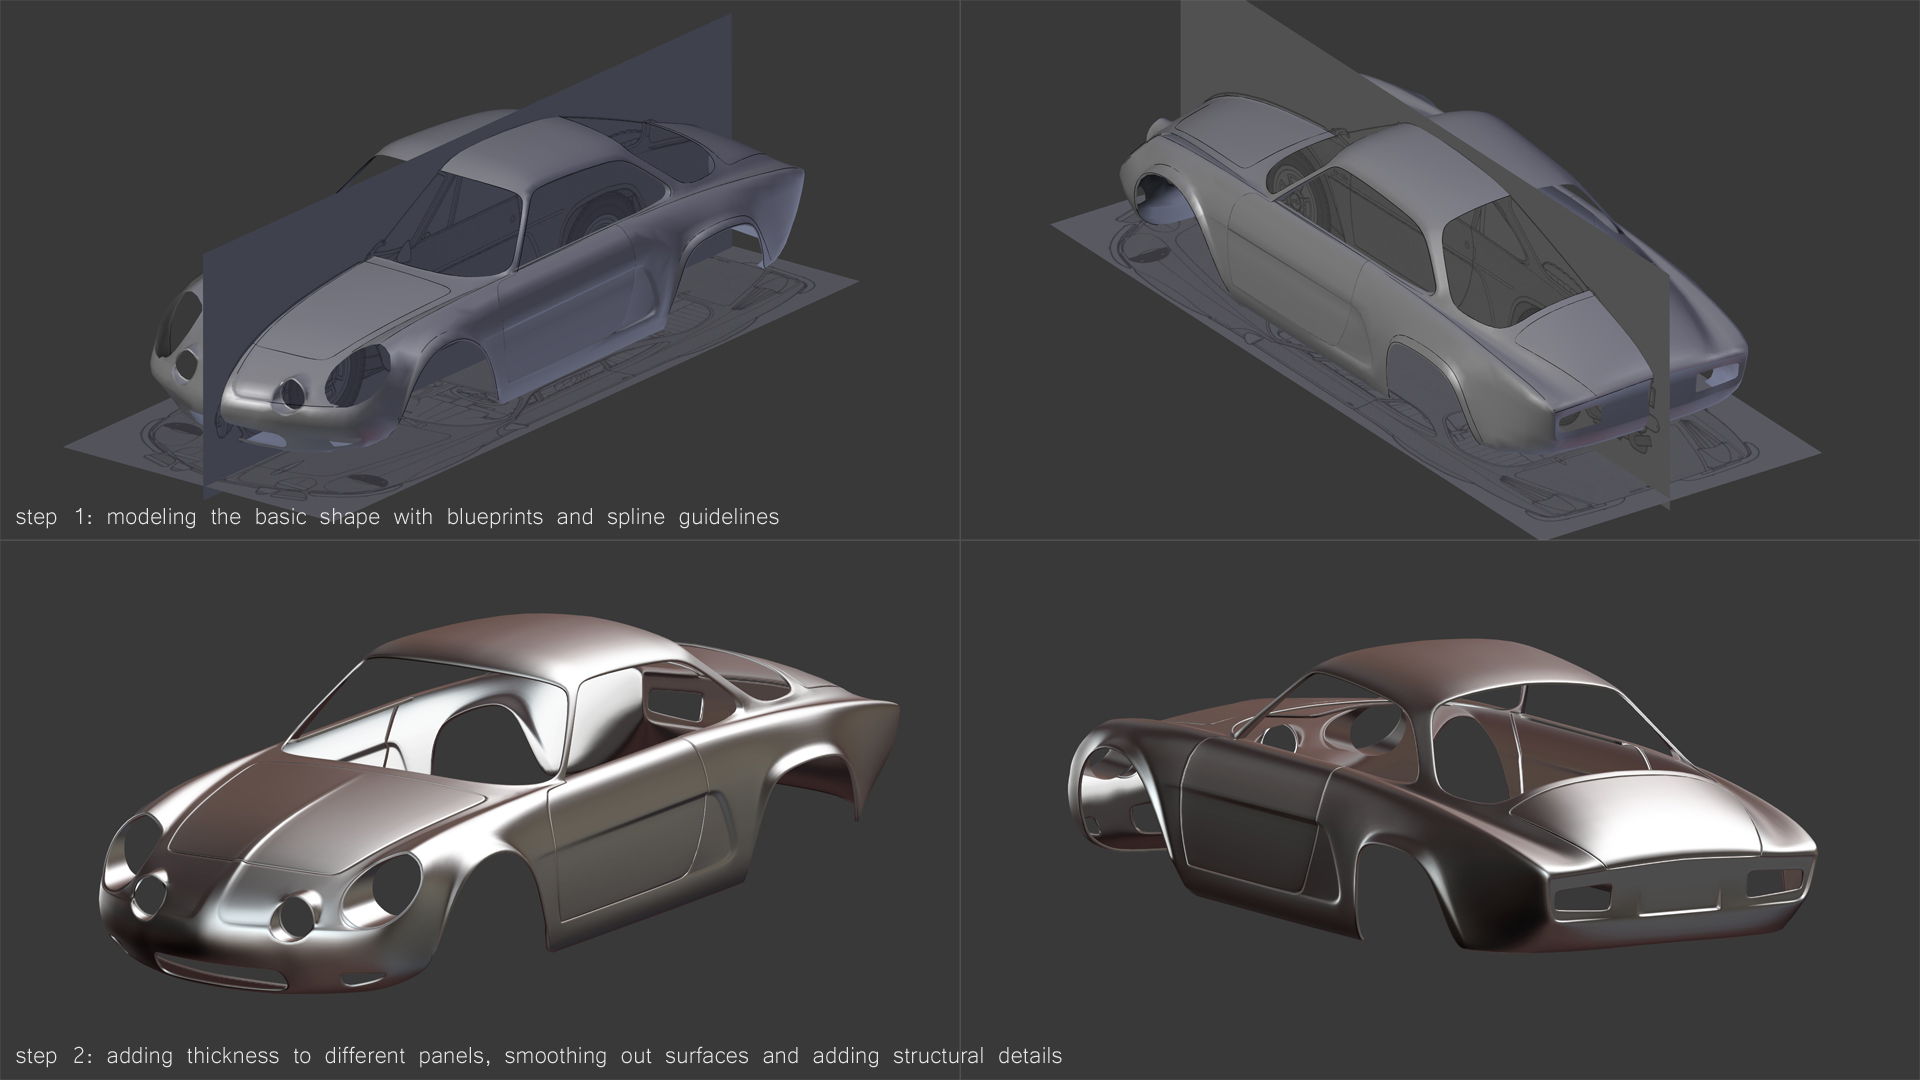 Modeling of Renault